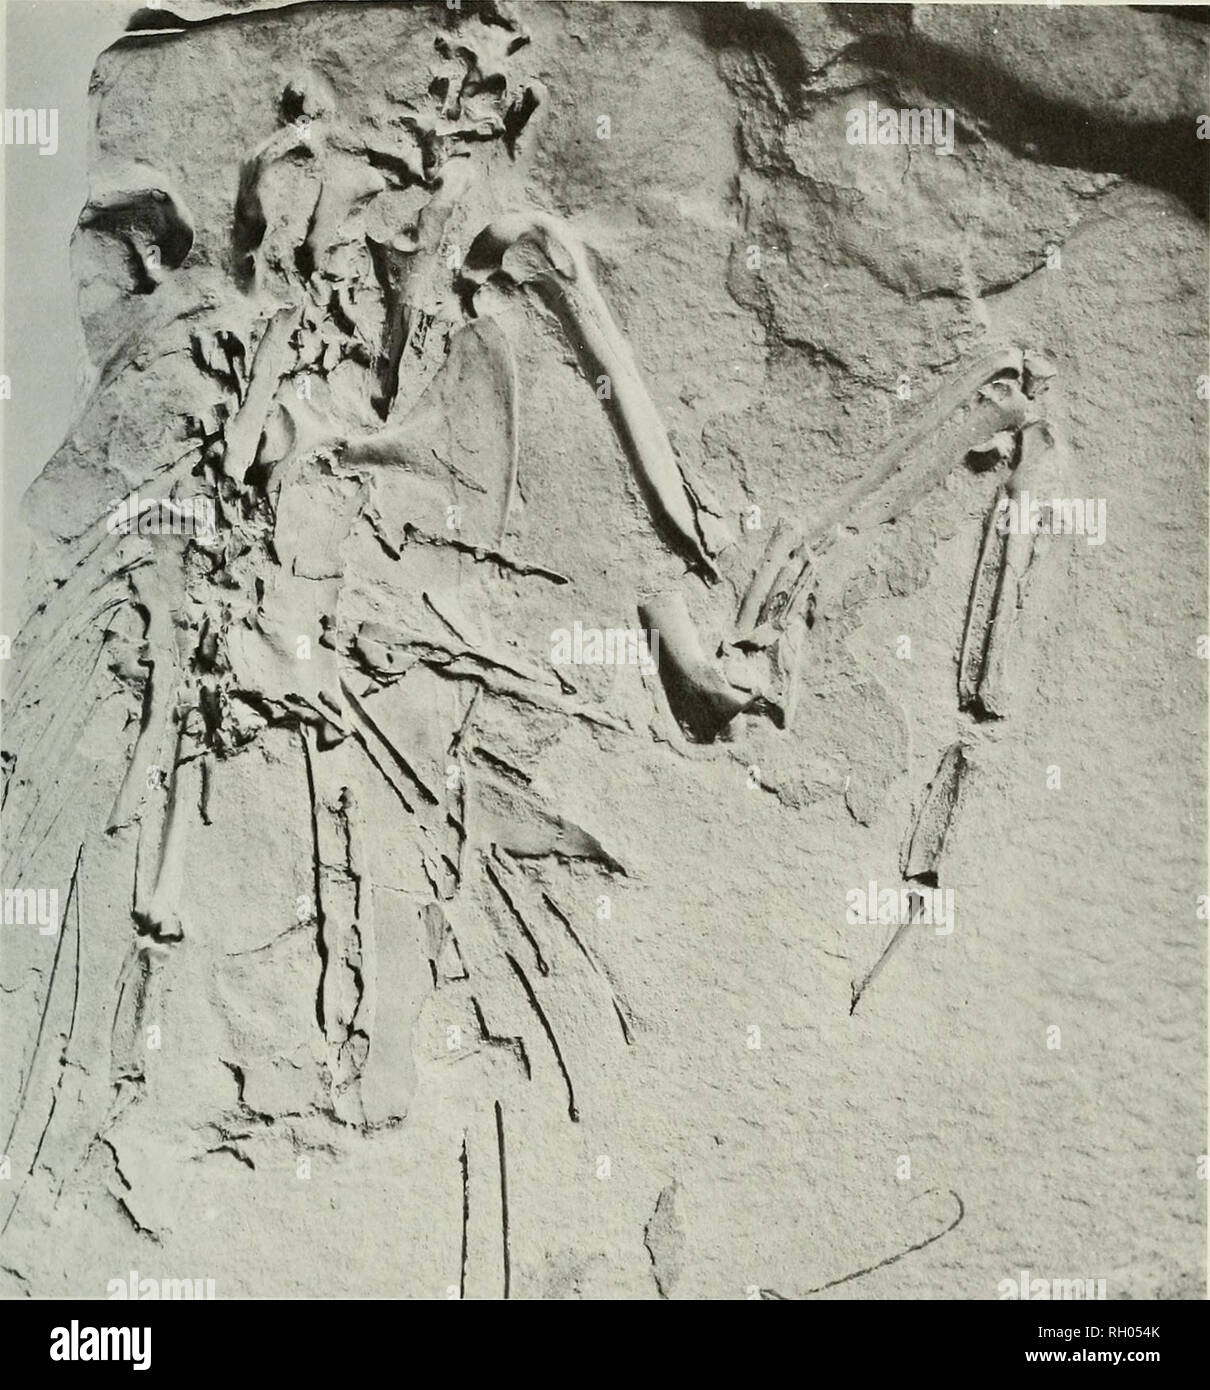 . Bulletin. Science; Natural history; Natural history. NEW SPECIES OF LATE MIOCENE MURRE. Fig. 2. Uria brodkorbi, holotype slab PB7960B showing impression on left side. Depending on the angle viewed, the skeletal elements appear raised or impressed. Length of complete carpo- metacarpus 47.5 mm. Coracoid: Length from foremost (anterior) edge of coracohumeral surface to external tip of sternal facet 42.5; depth of shaft to tip of procoracoid 11.5; breadth of glenoid facet 6.5; length of glenoid facet 8.0; distance from procoracoid to foramen 6.6. Humerus: Greatest length 90 approx.; breadth of p - Stock Image